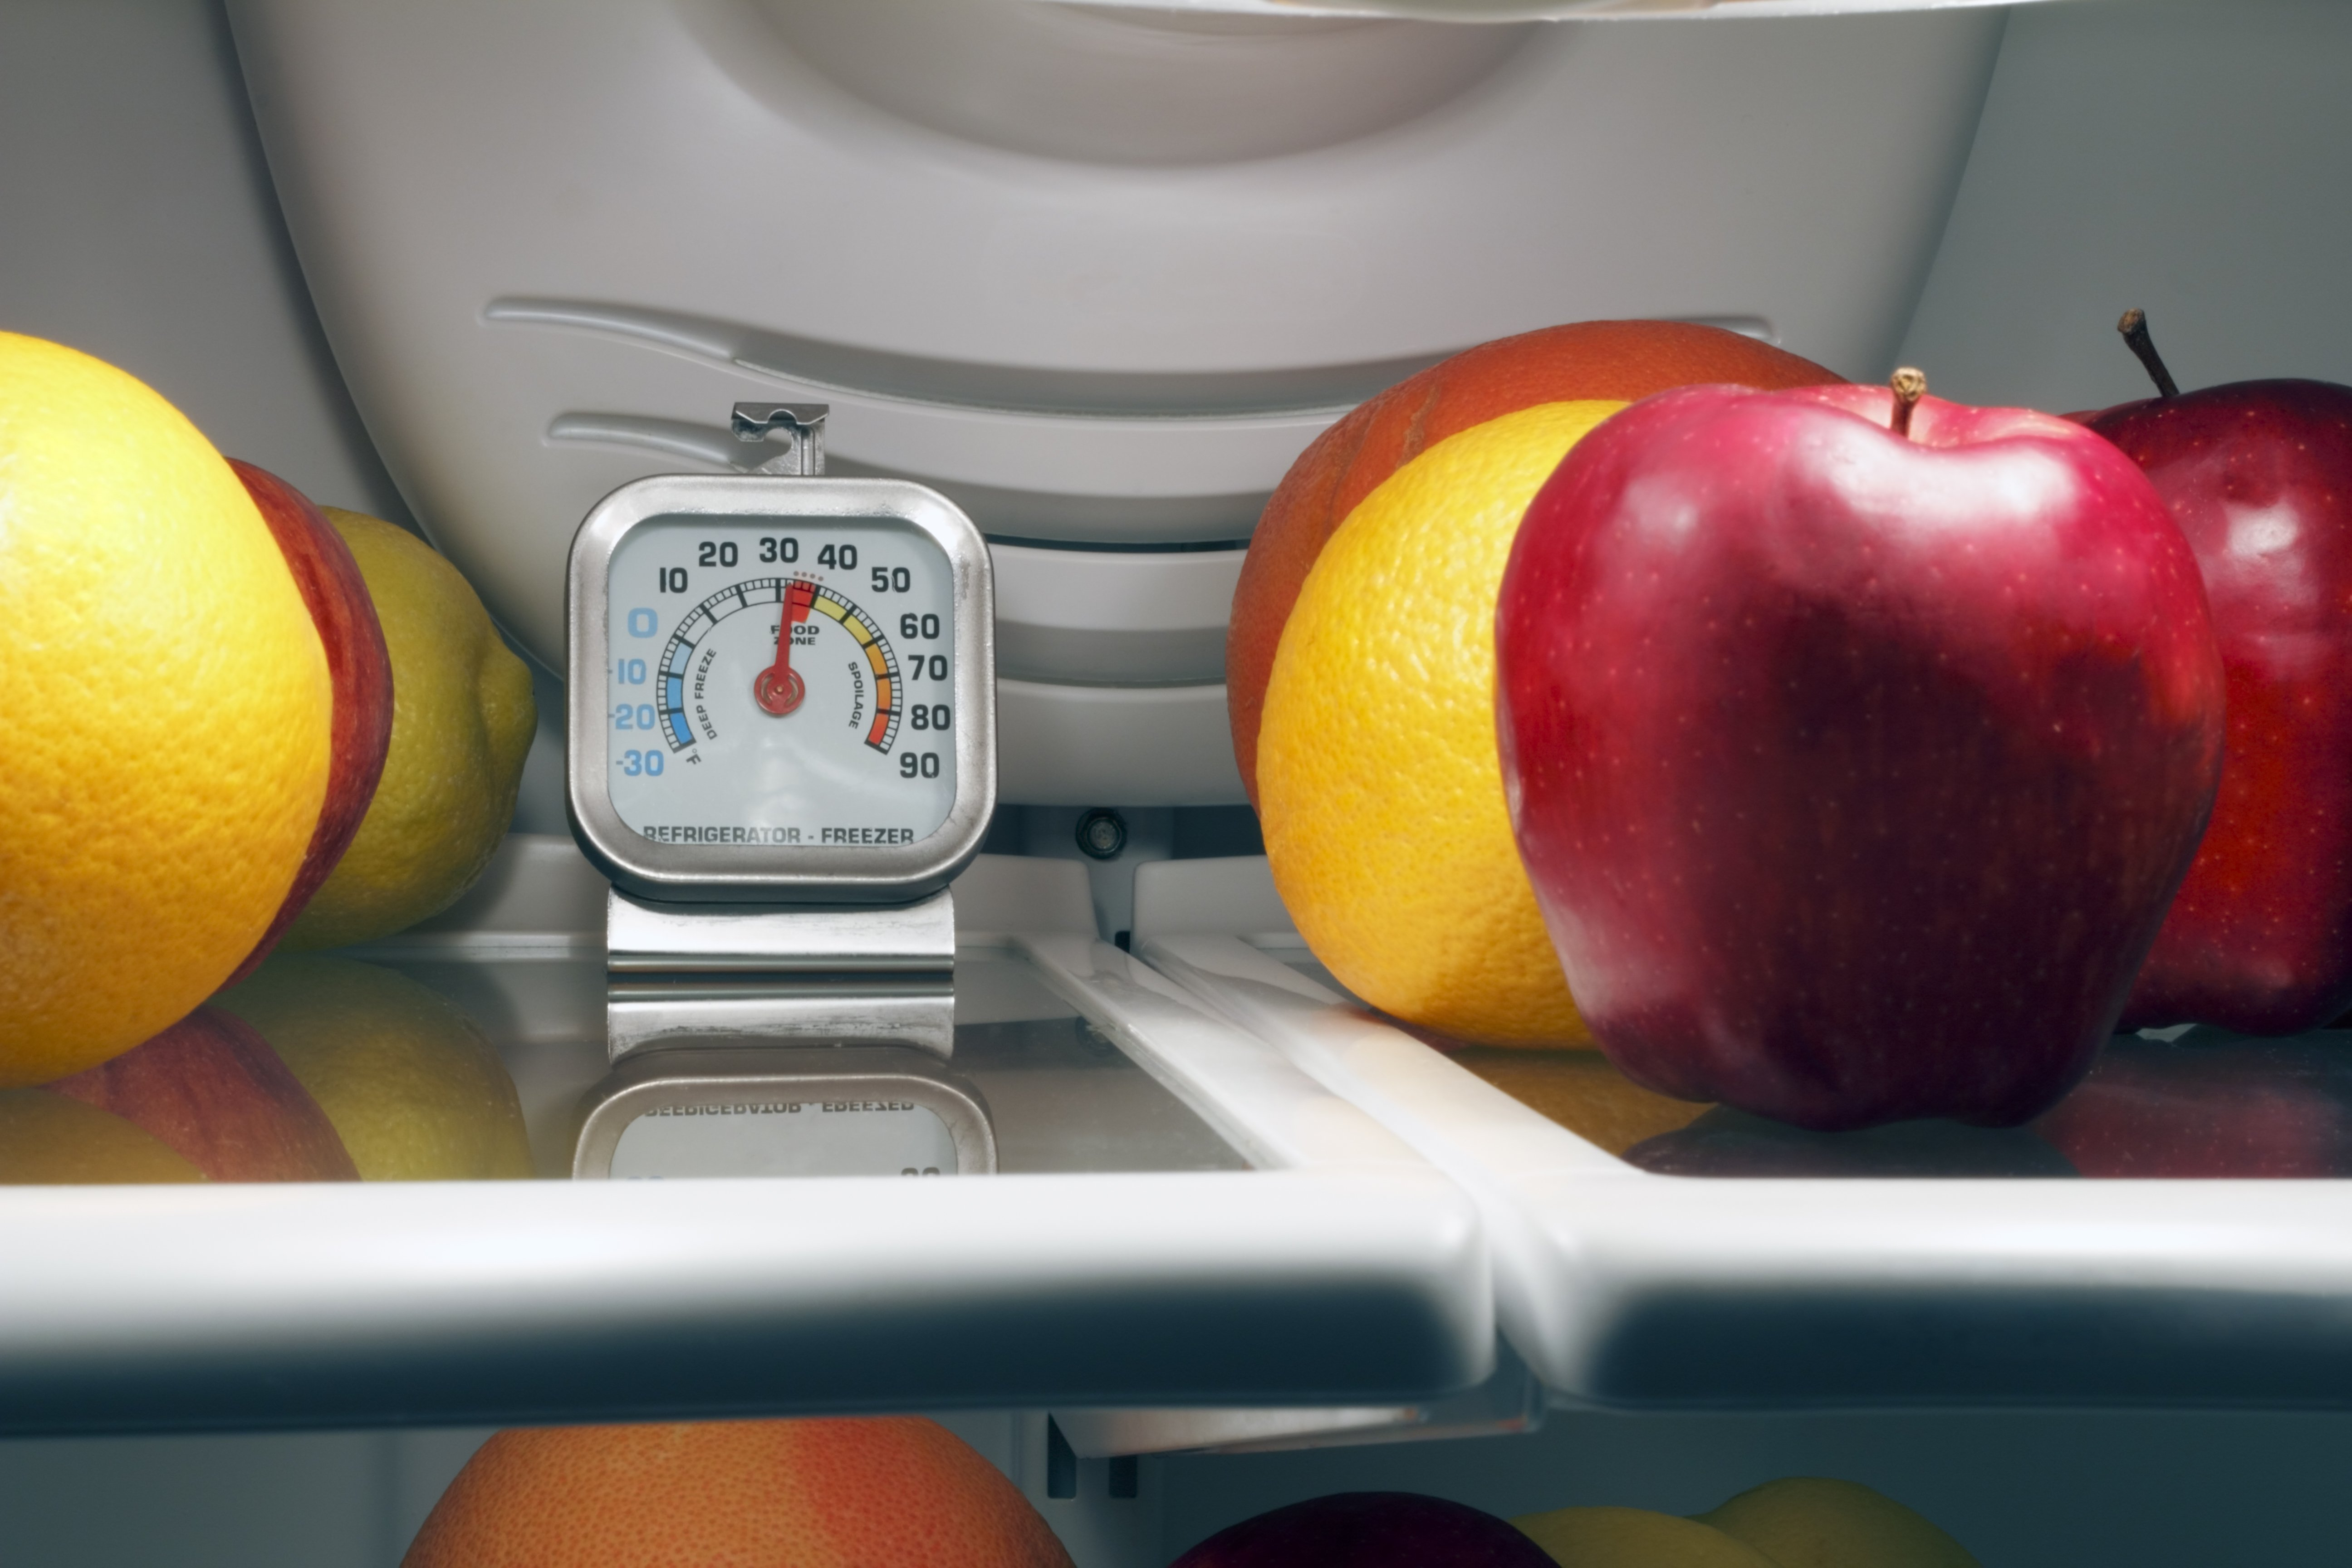 At What Temperature Should My Refrigerator Be Set? | Kitchn